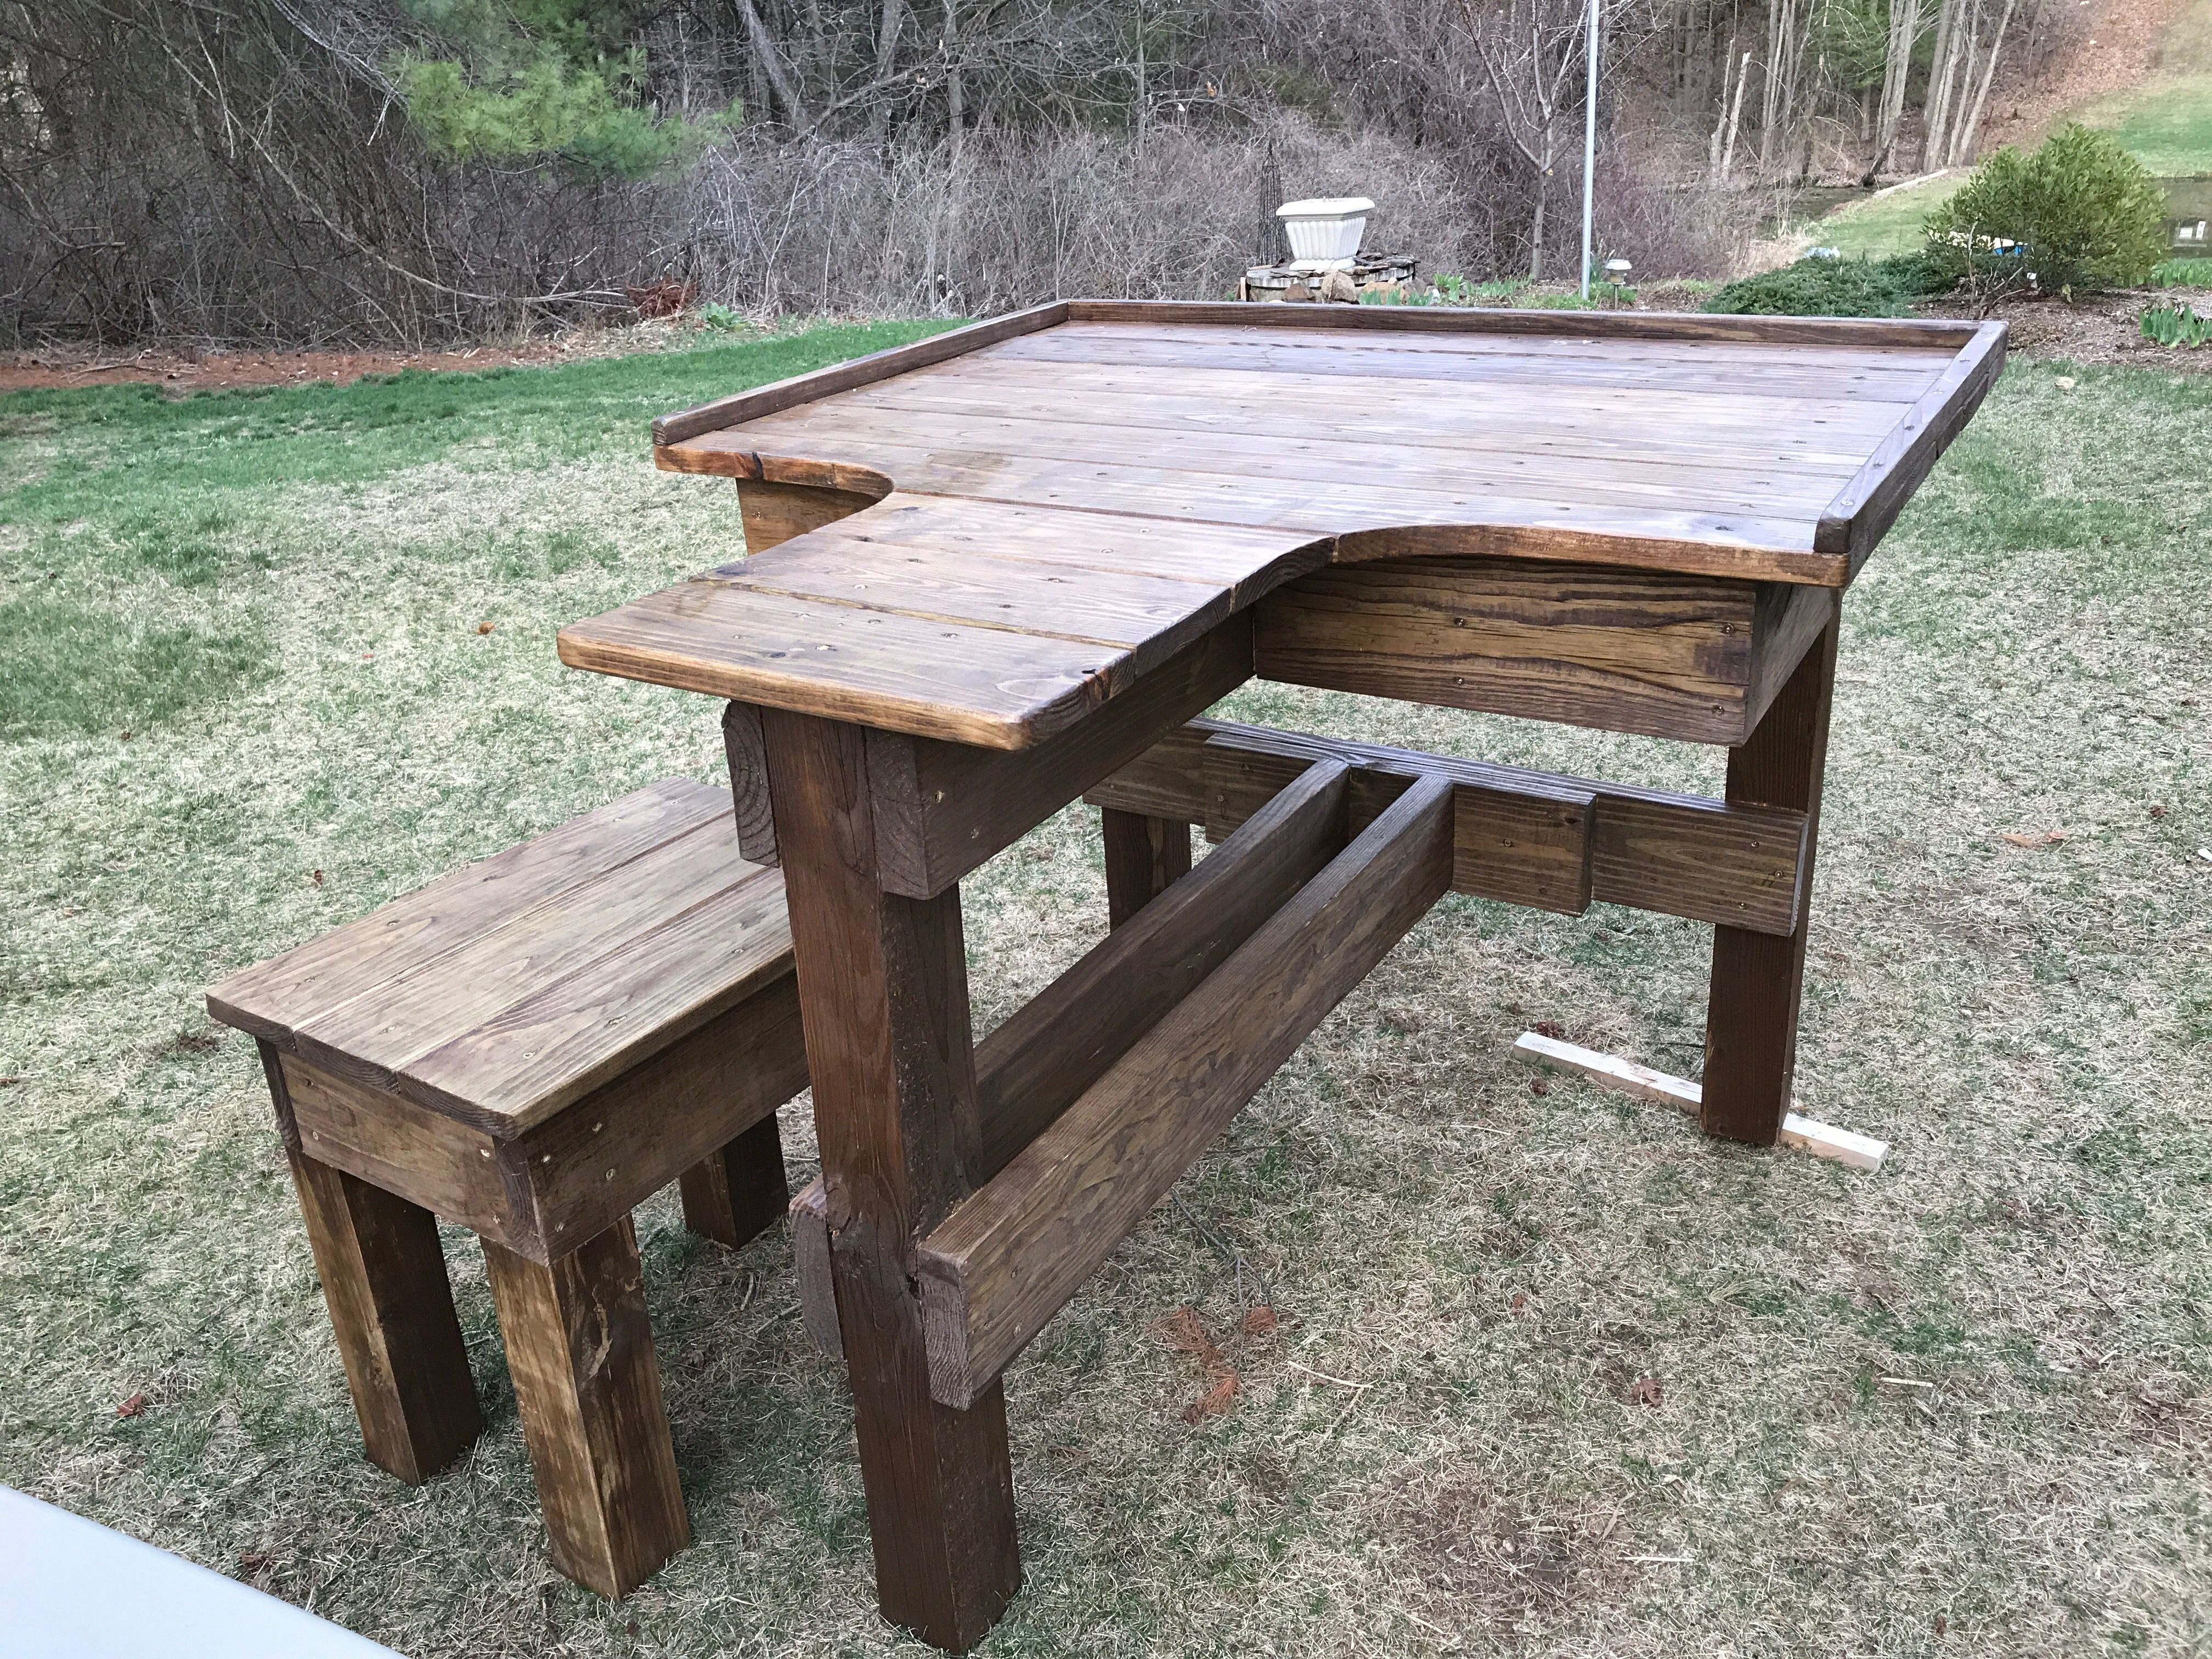 shooting benches for sale Shooting Table Plans